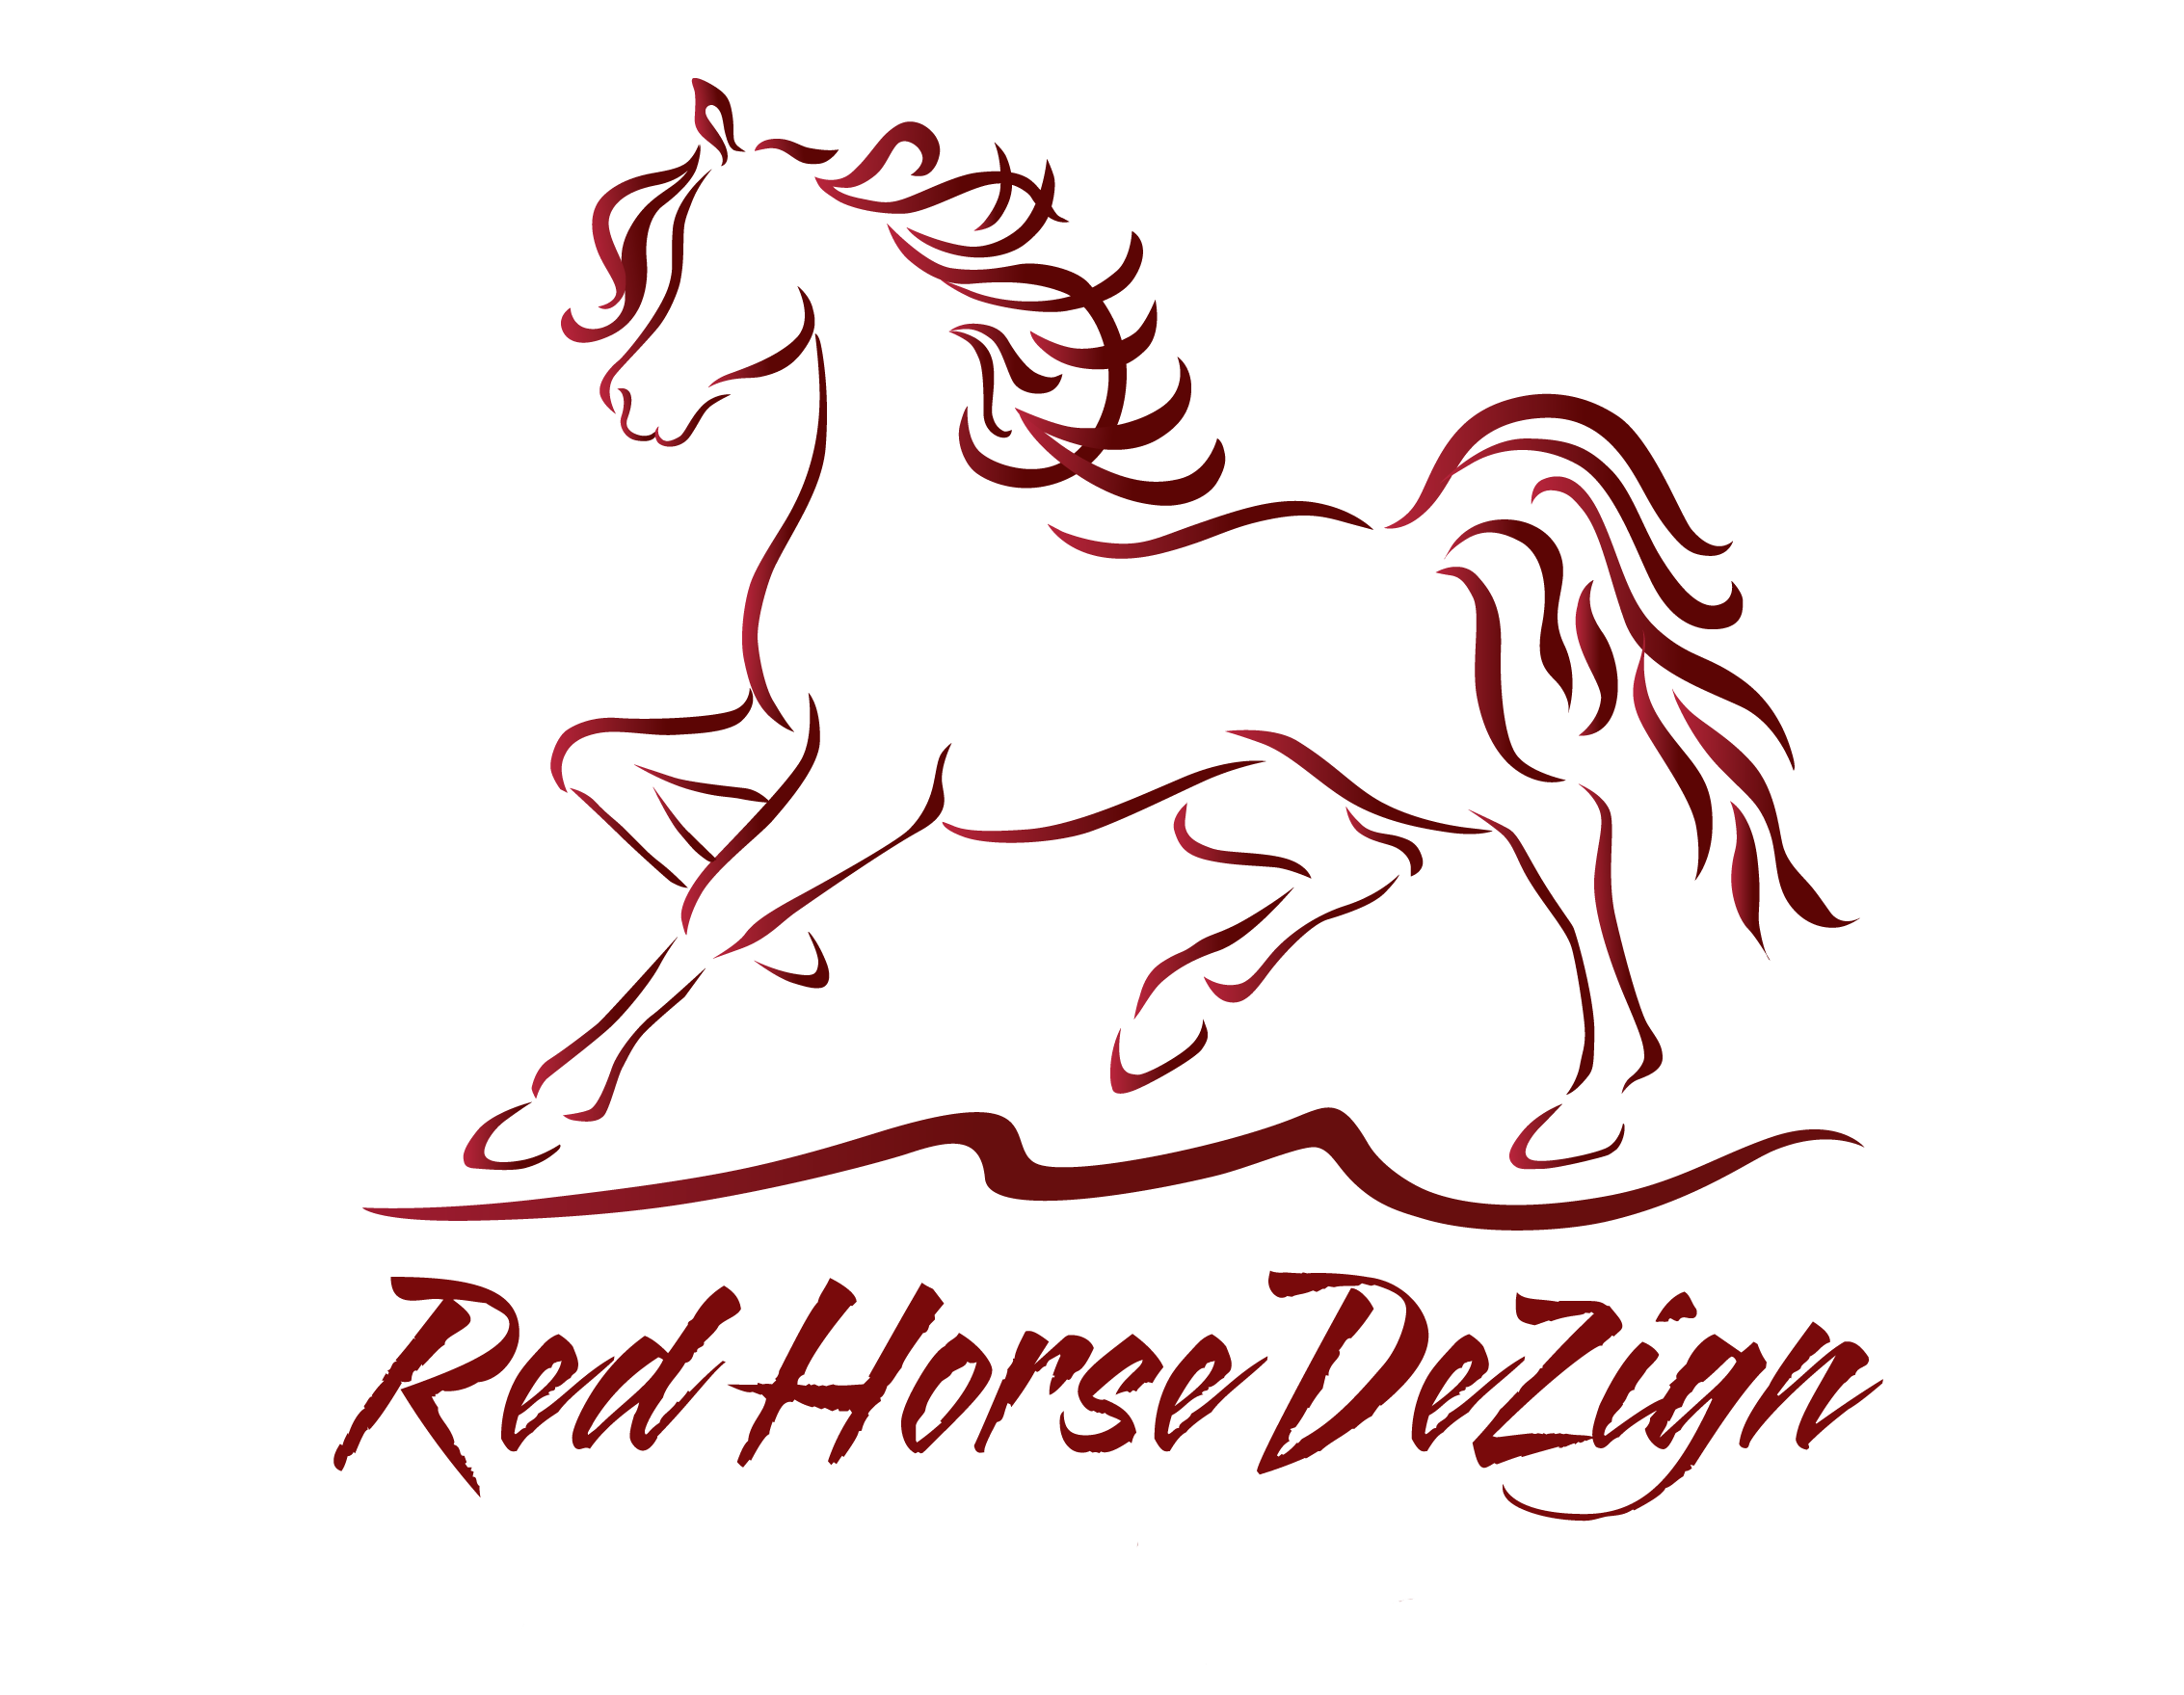 red-horse-dezign-logo-graphic-design